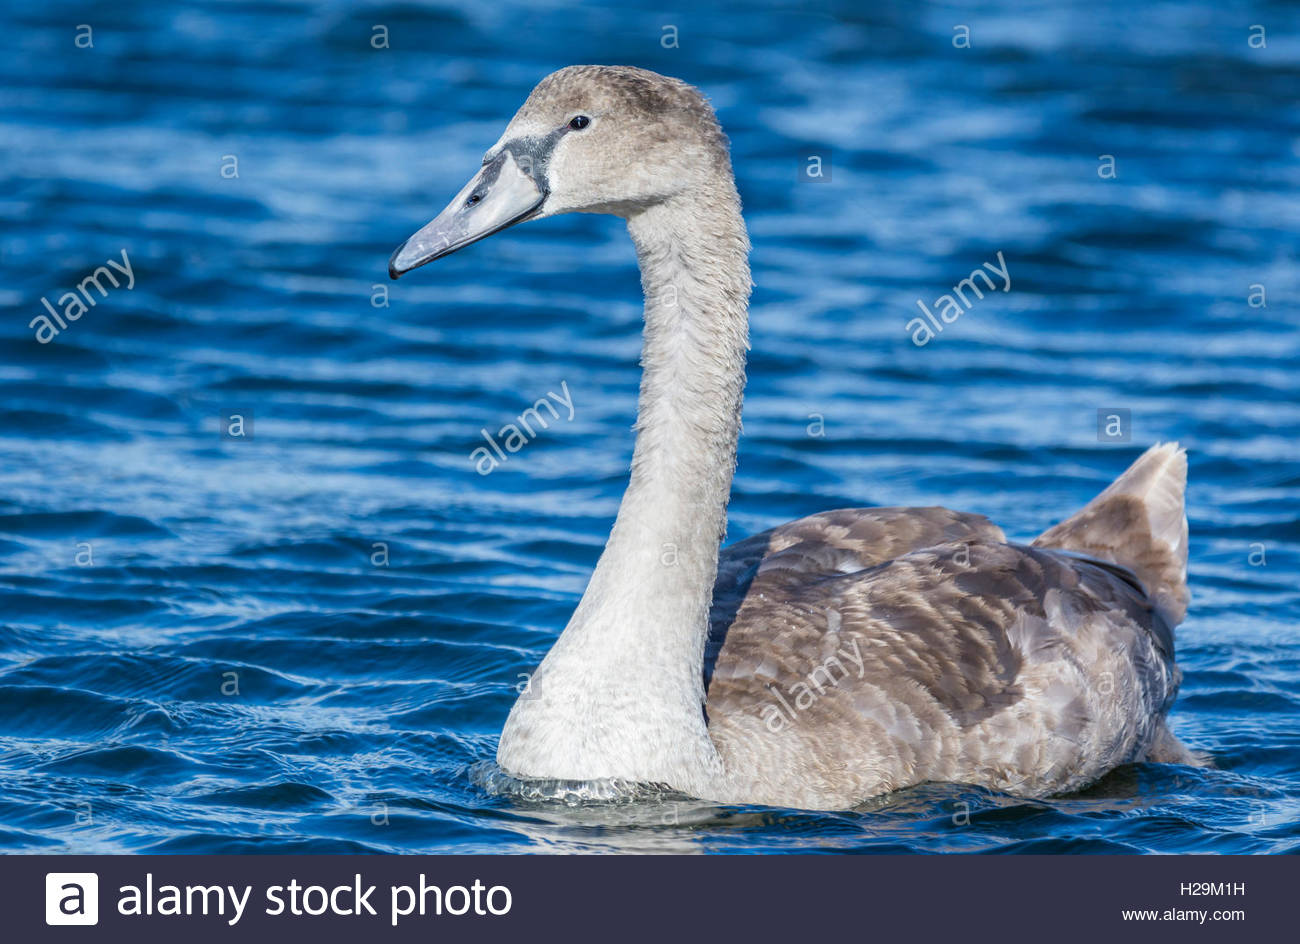 White Mute swan cygnet (cygnus olor) swimming on a choppy blue lake. - Stock Image